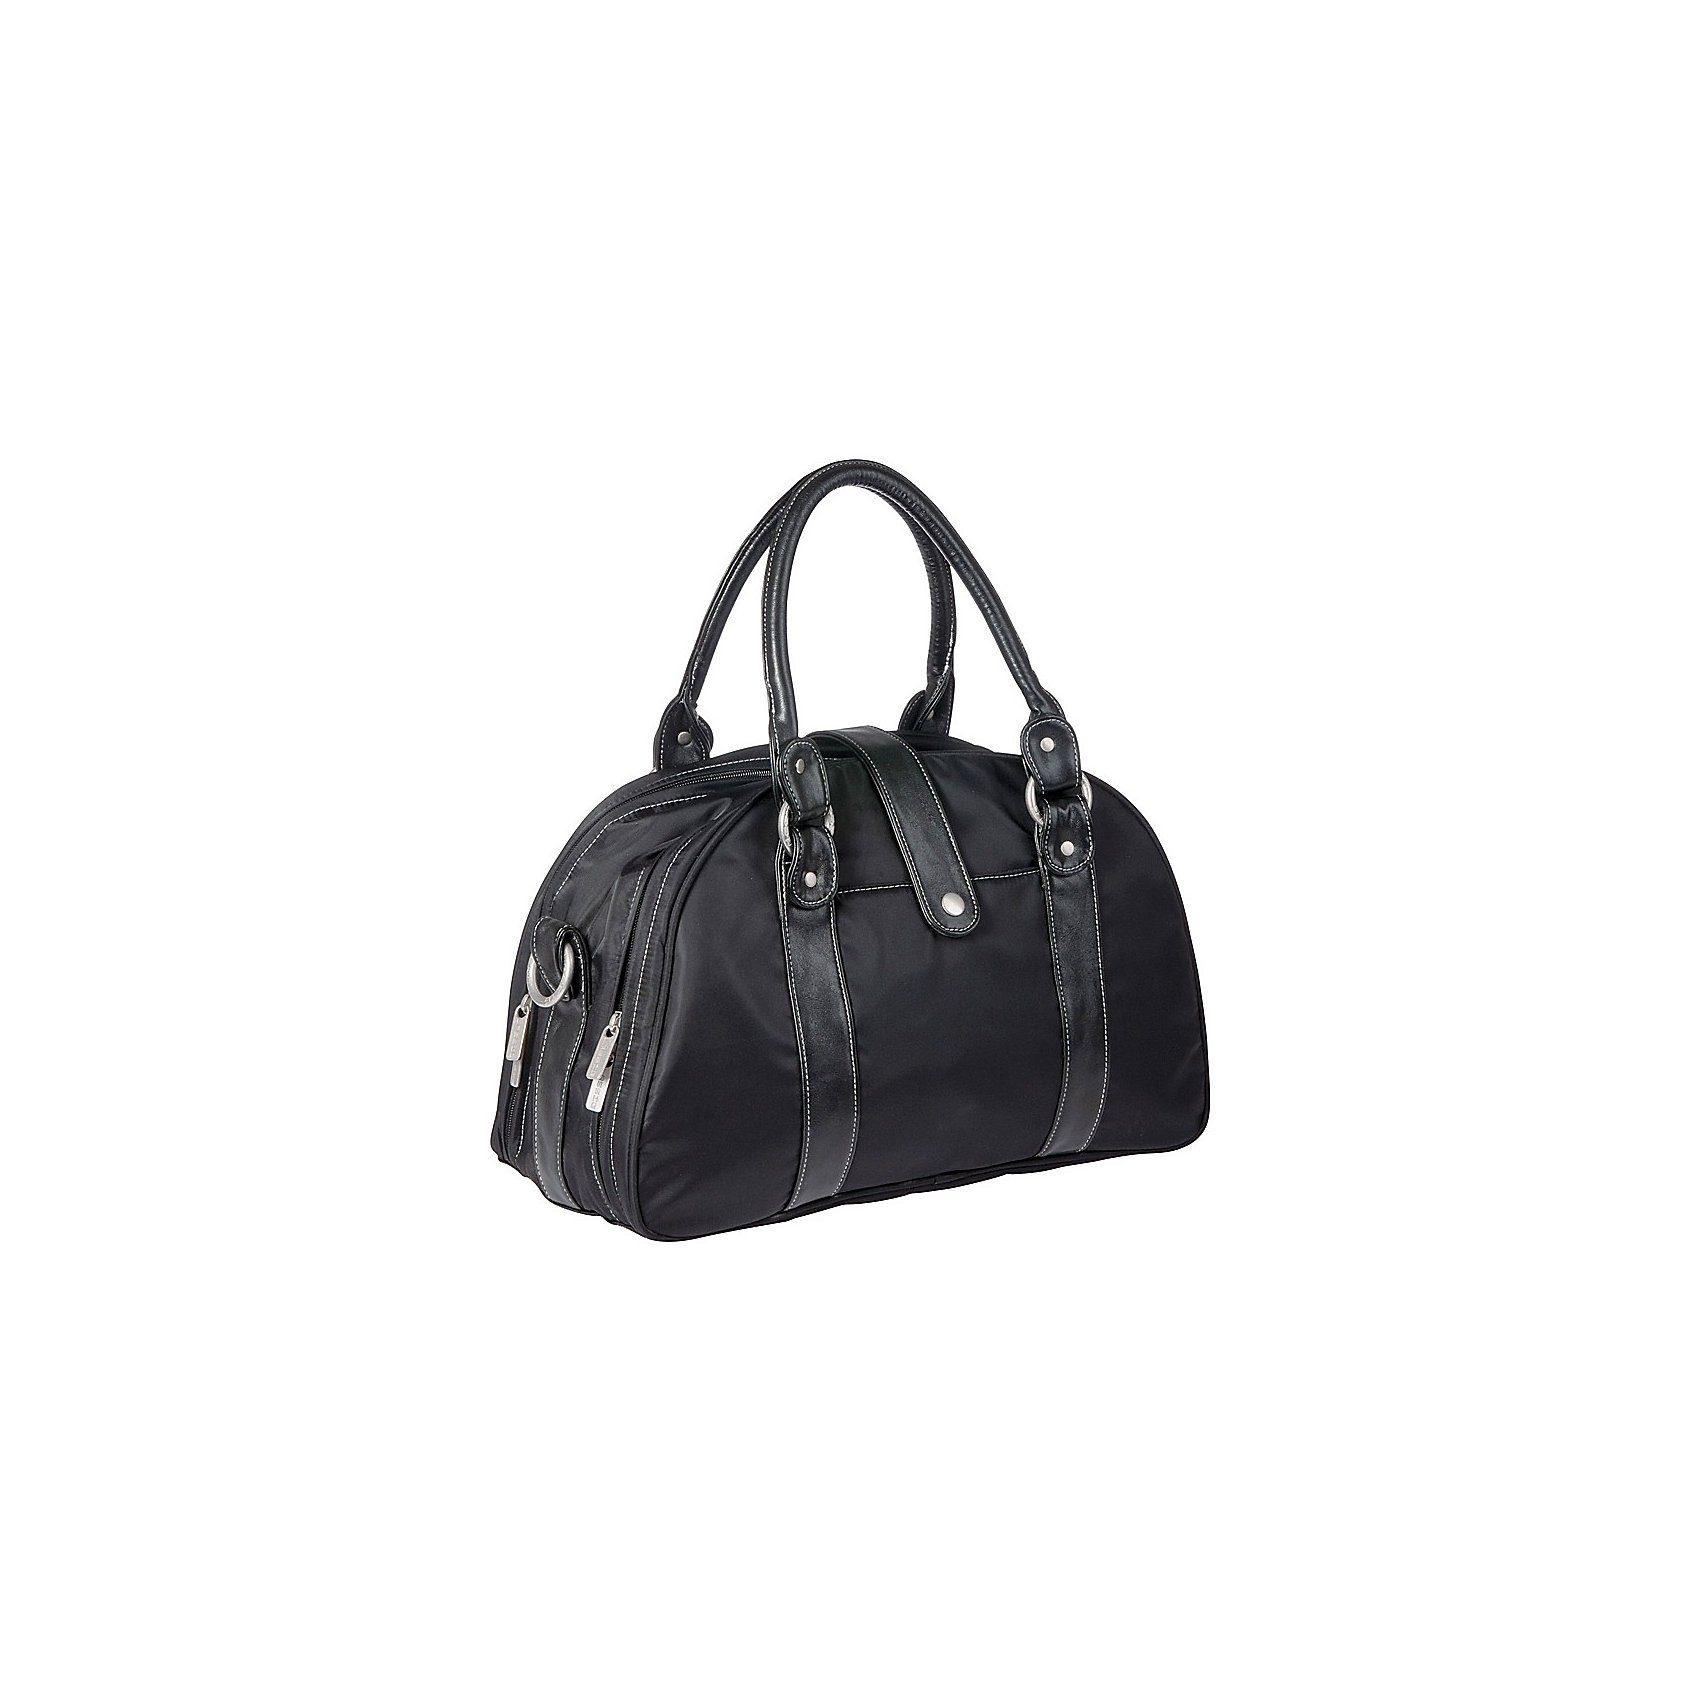 Lässig Wickeltasche Glam Shoulder Bag, Black